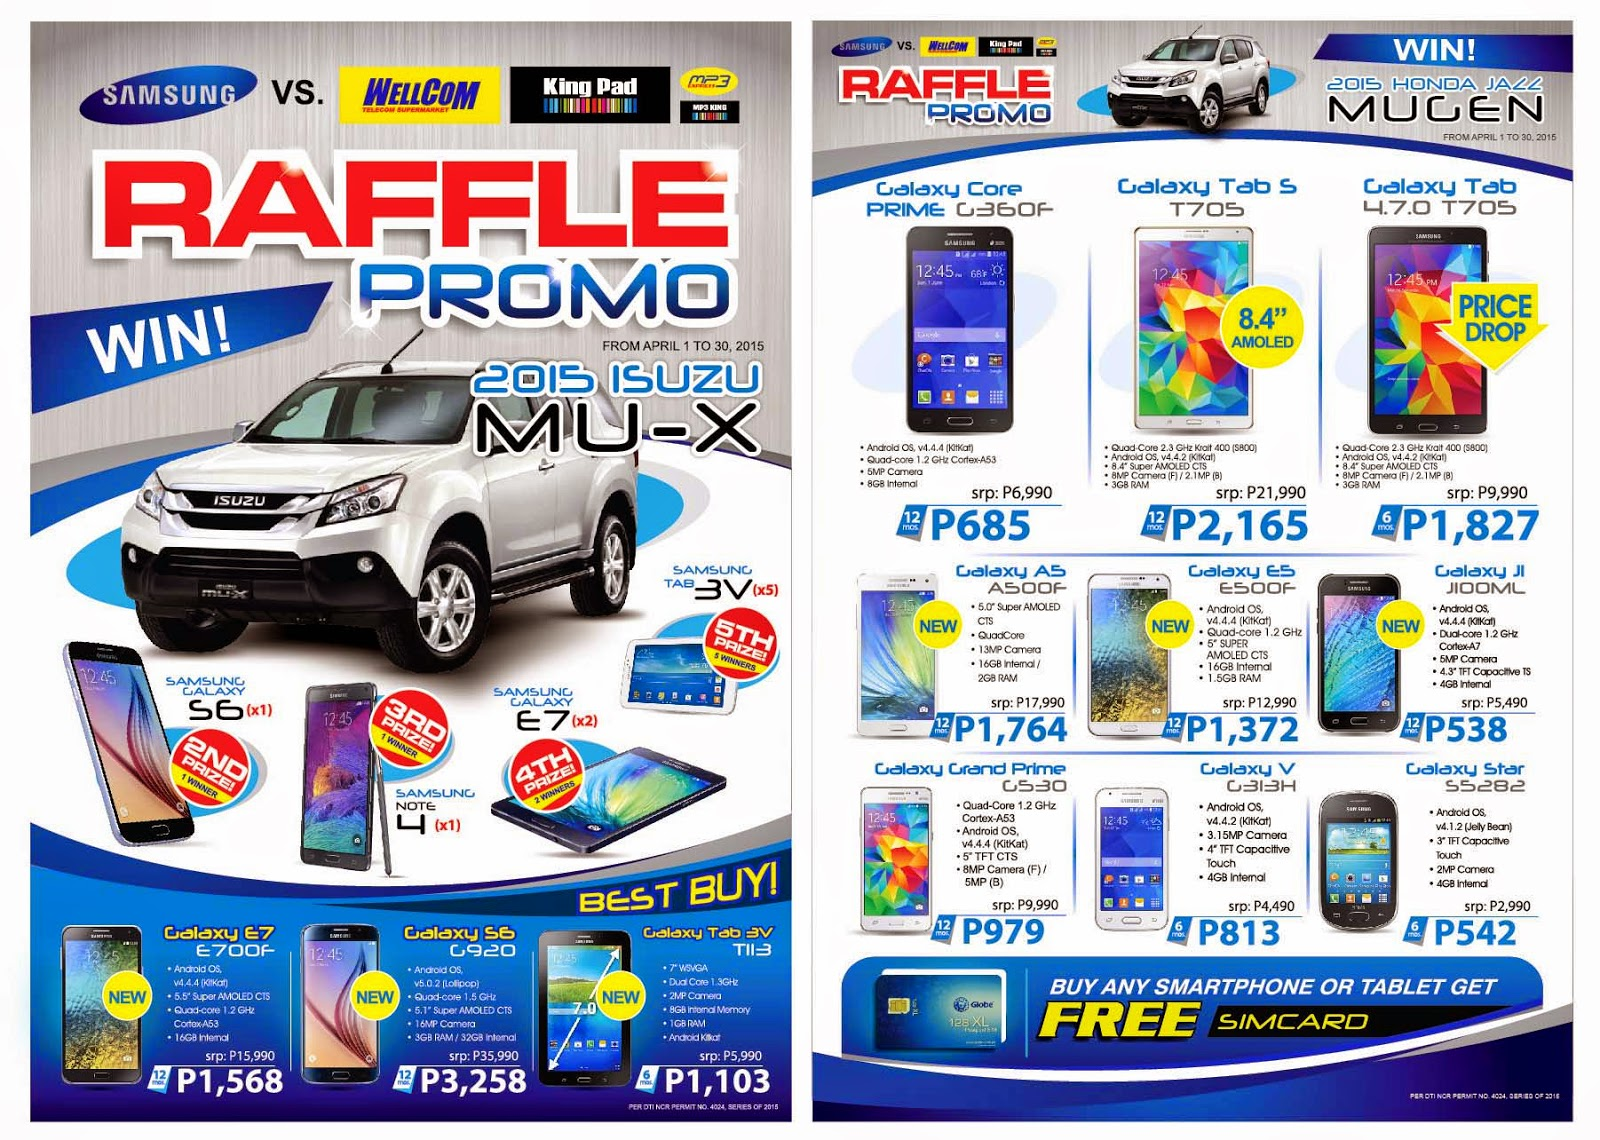 New product collect coupons win trip